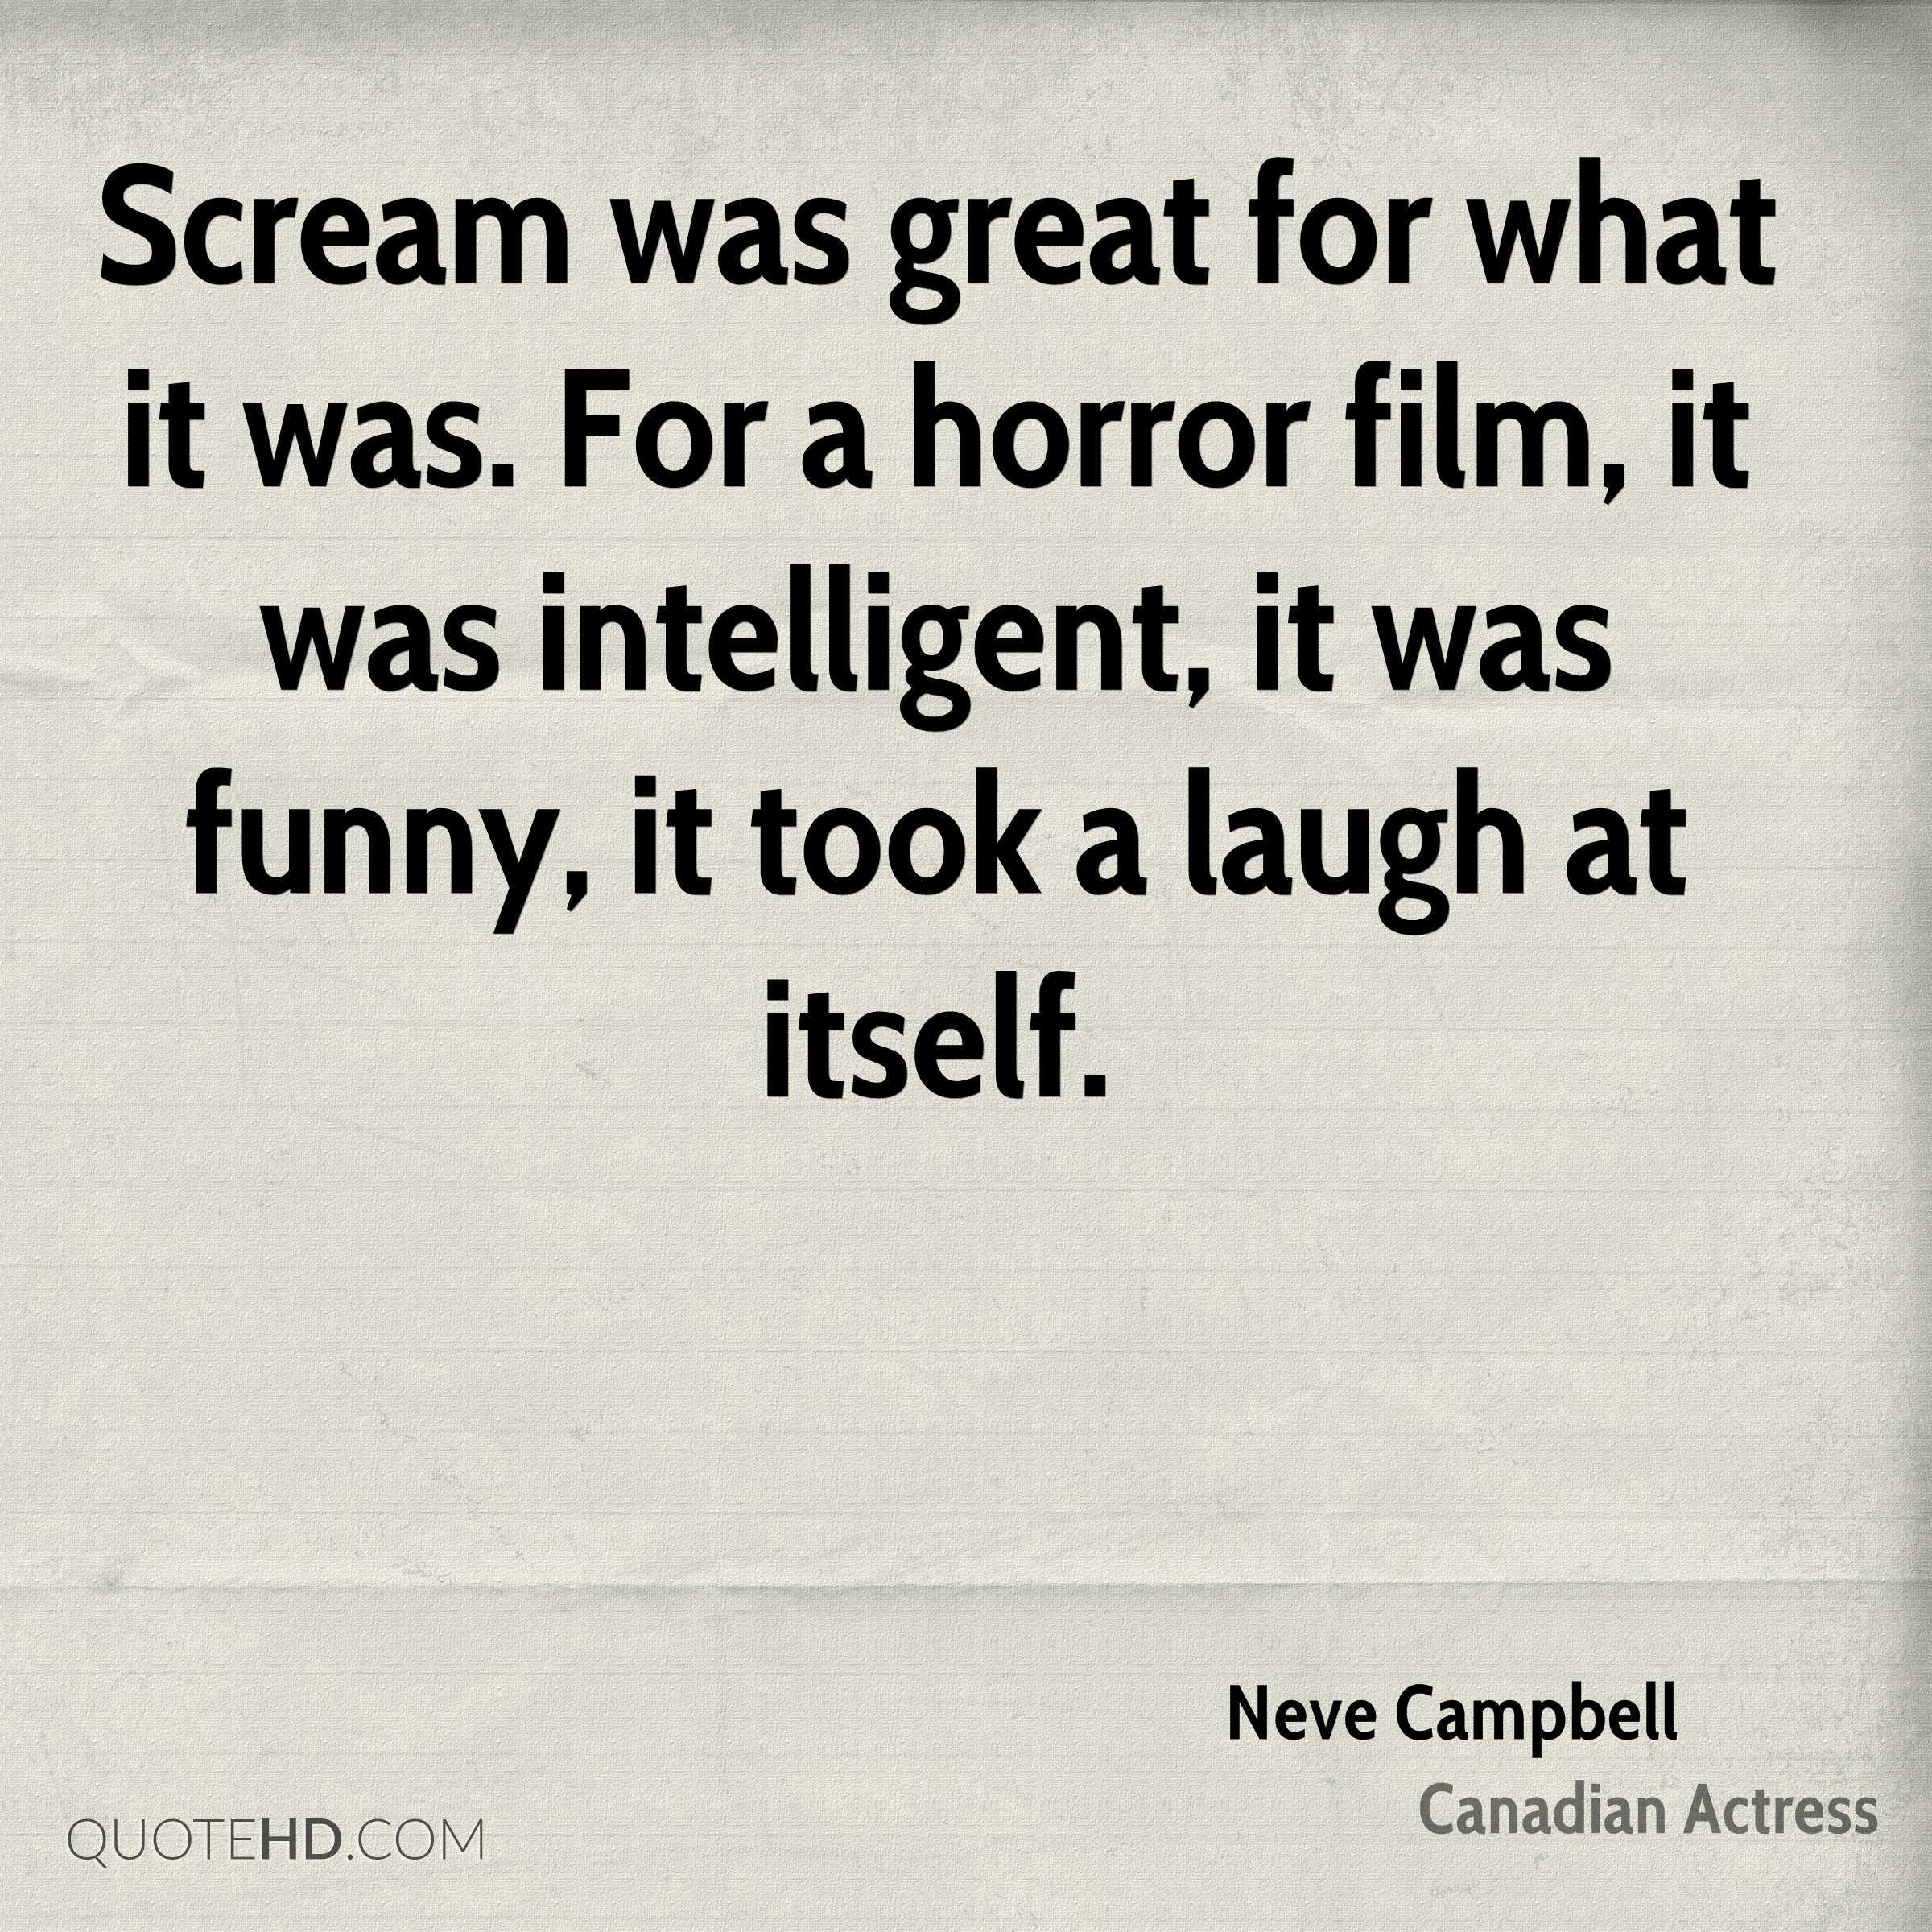 Scream was great for what it was. For a horror film, it was intelligent, it was funny, it took a laugh at itself.